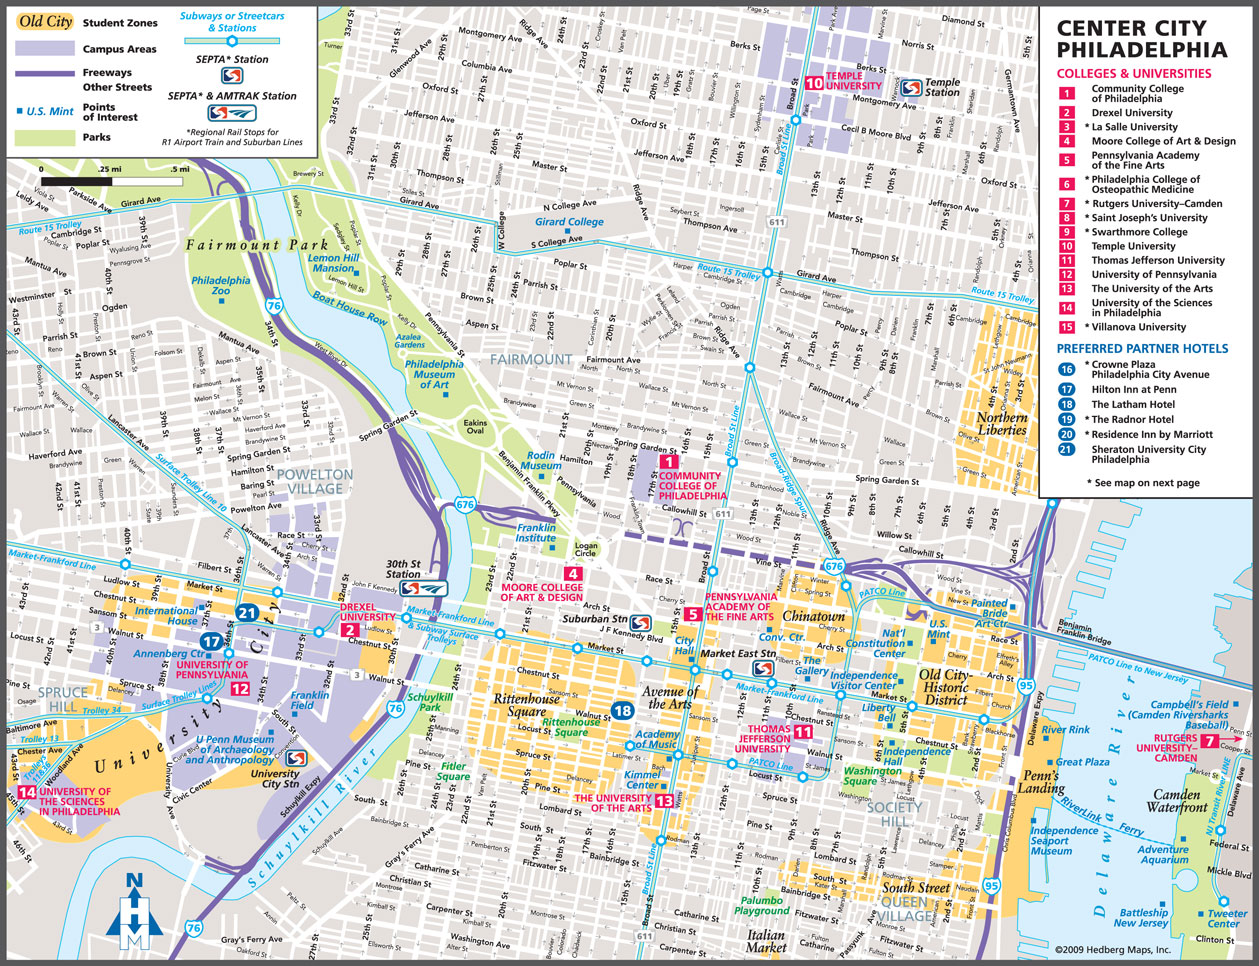 Philadelphia Tourist Map Philadelphia mappery – Philadelphia Tourist Map